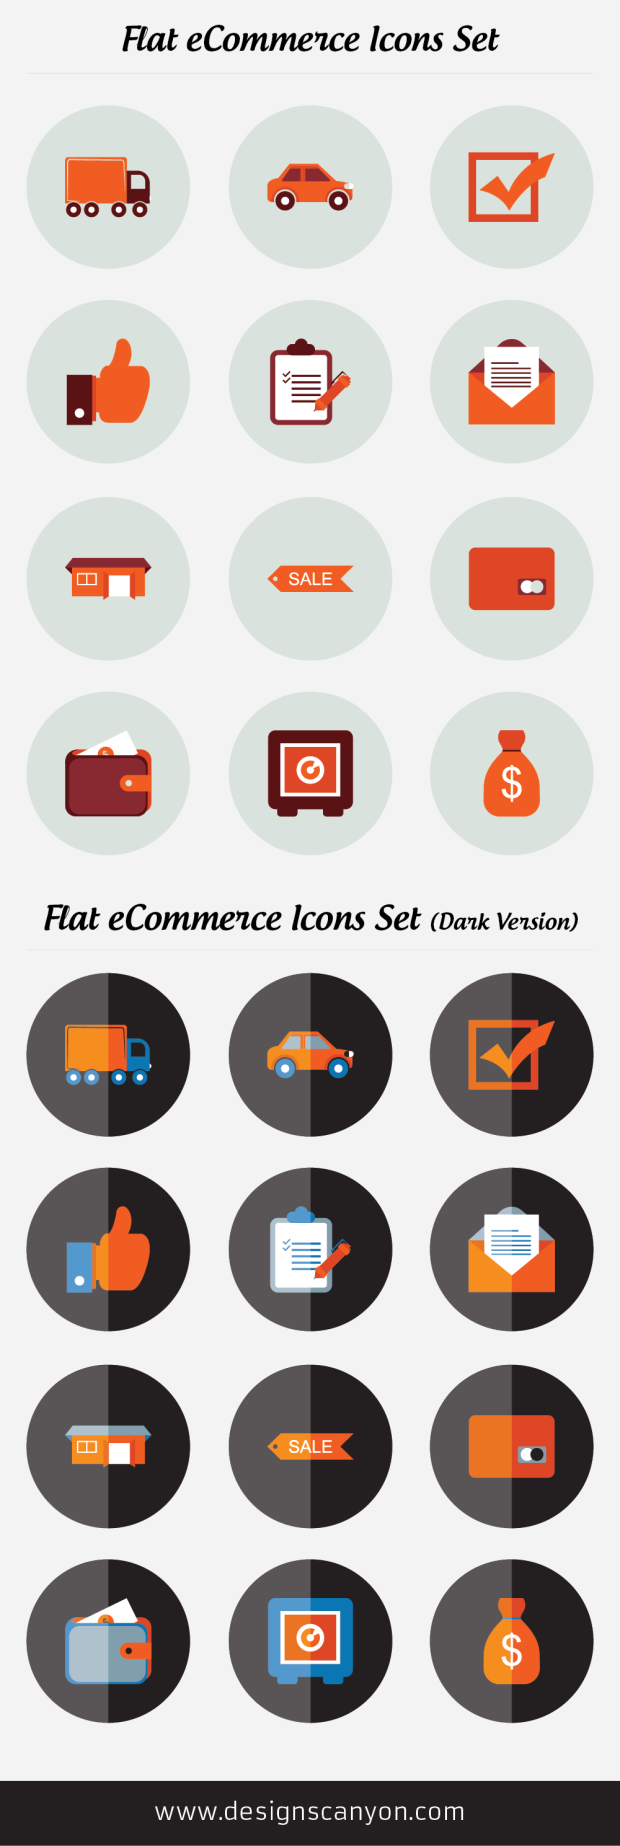 Flat Icons Set Free Download (With images